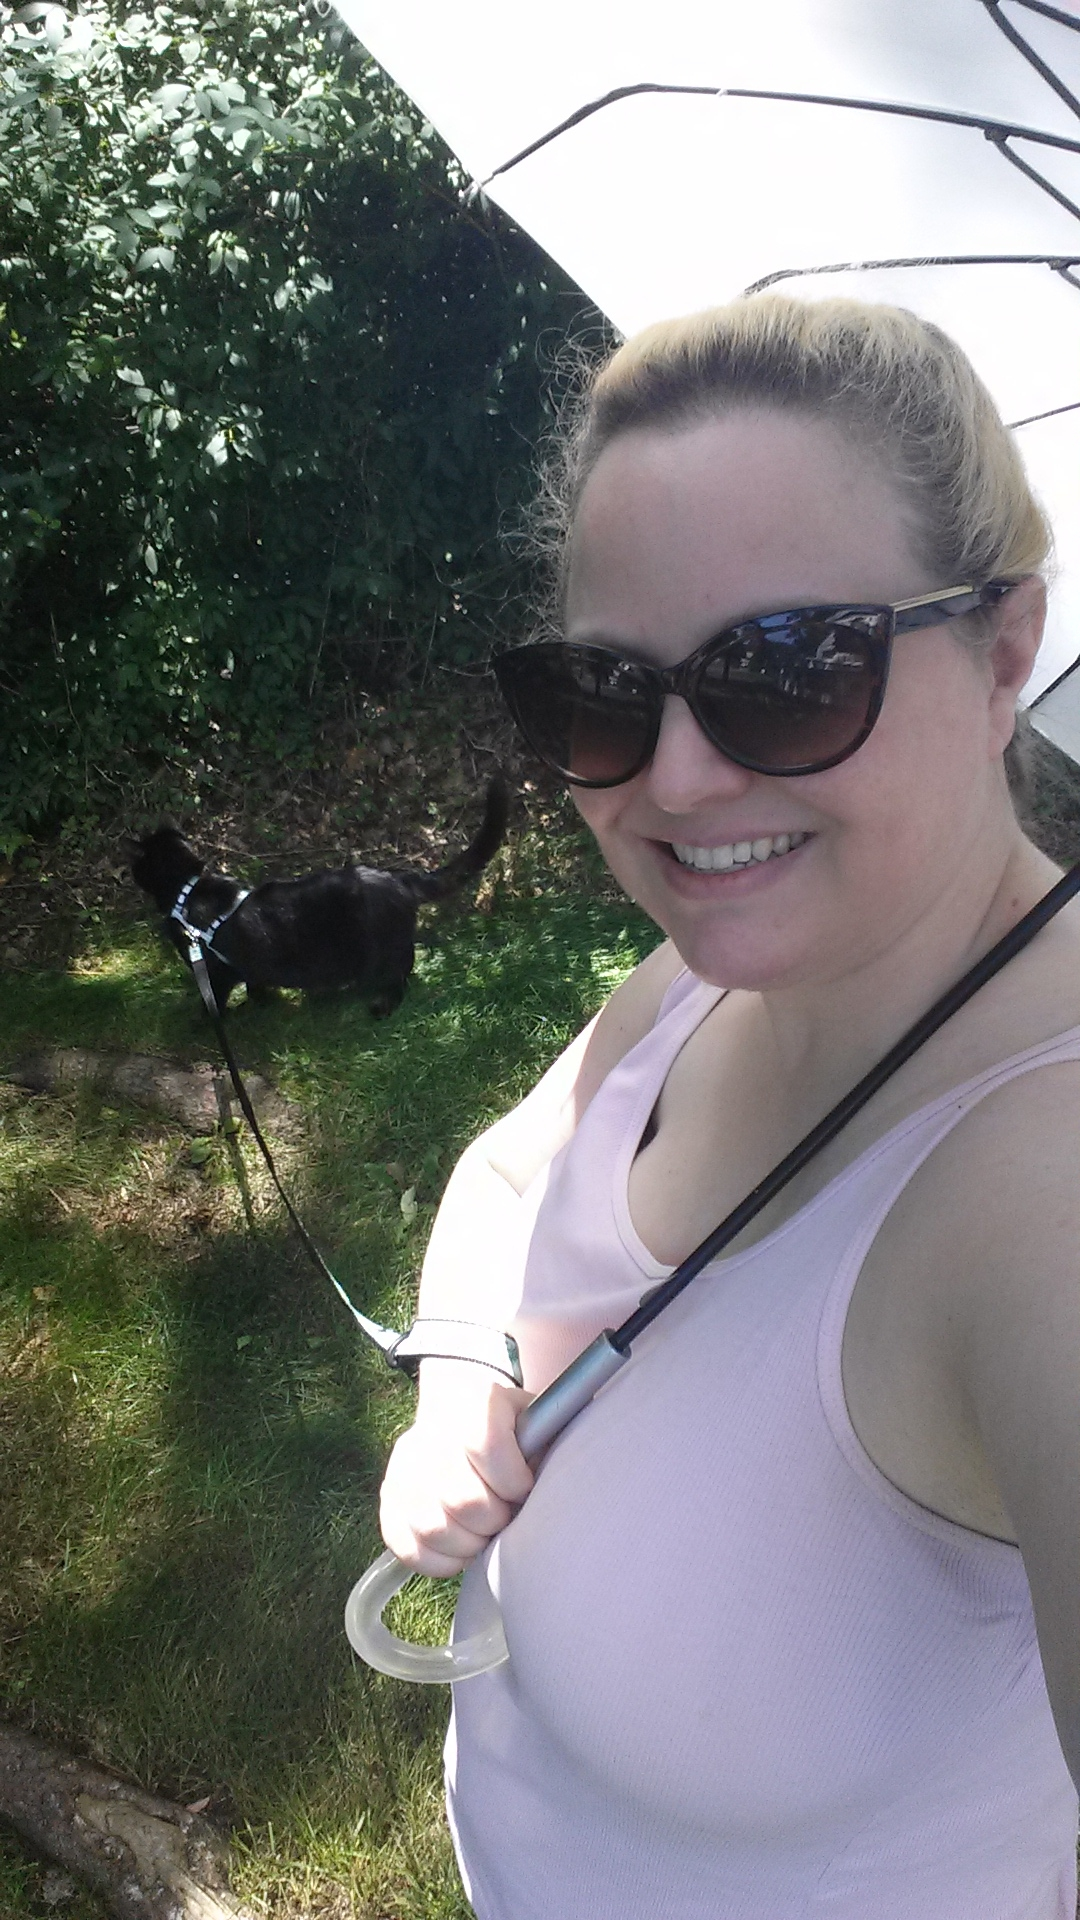 20170624 Amber and Gus on a walk